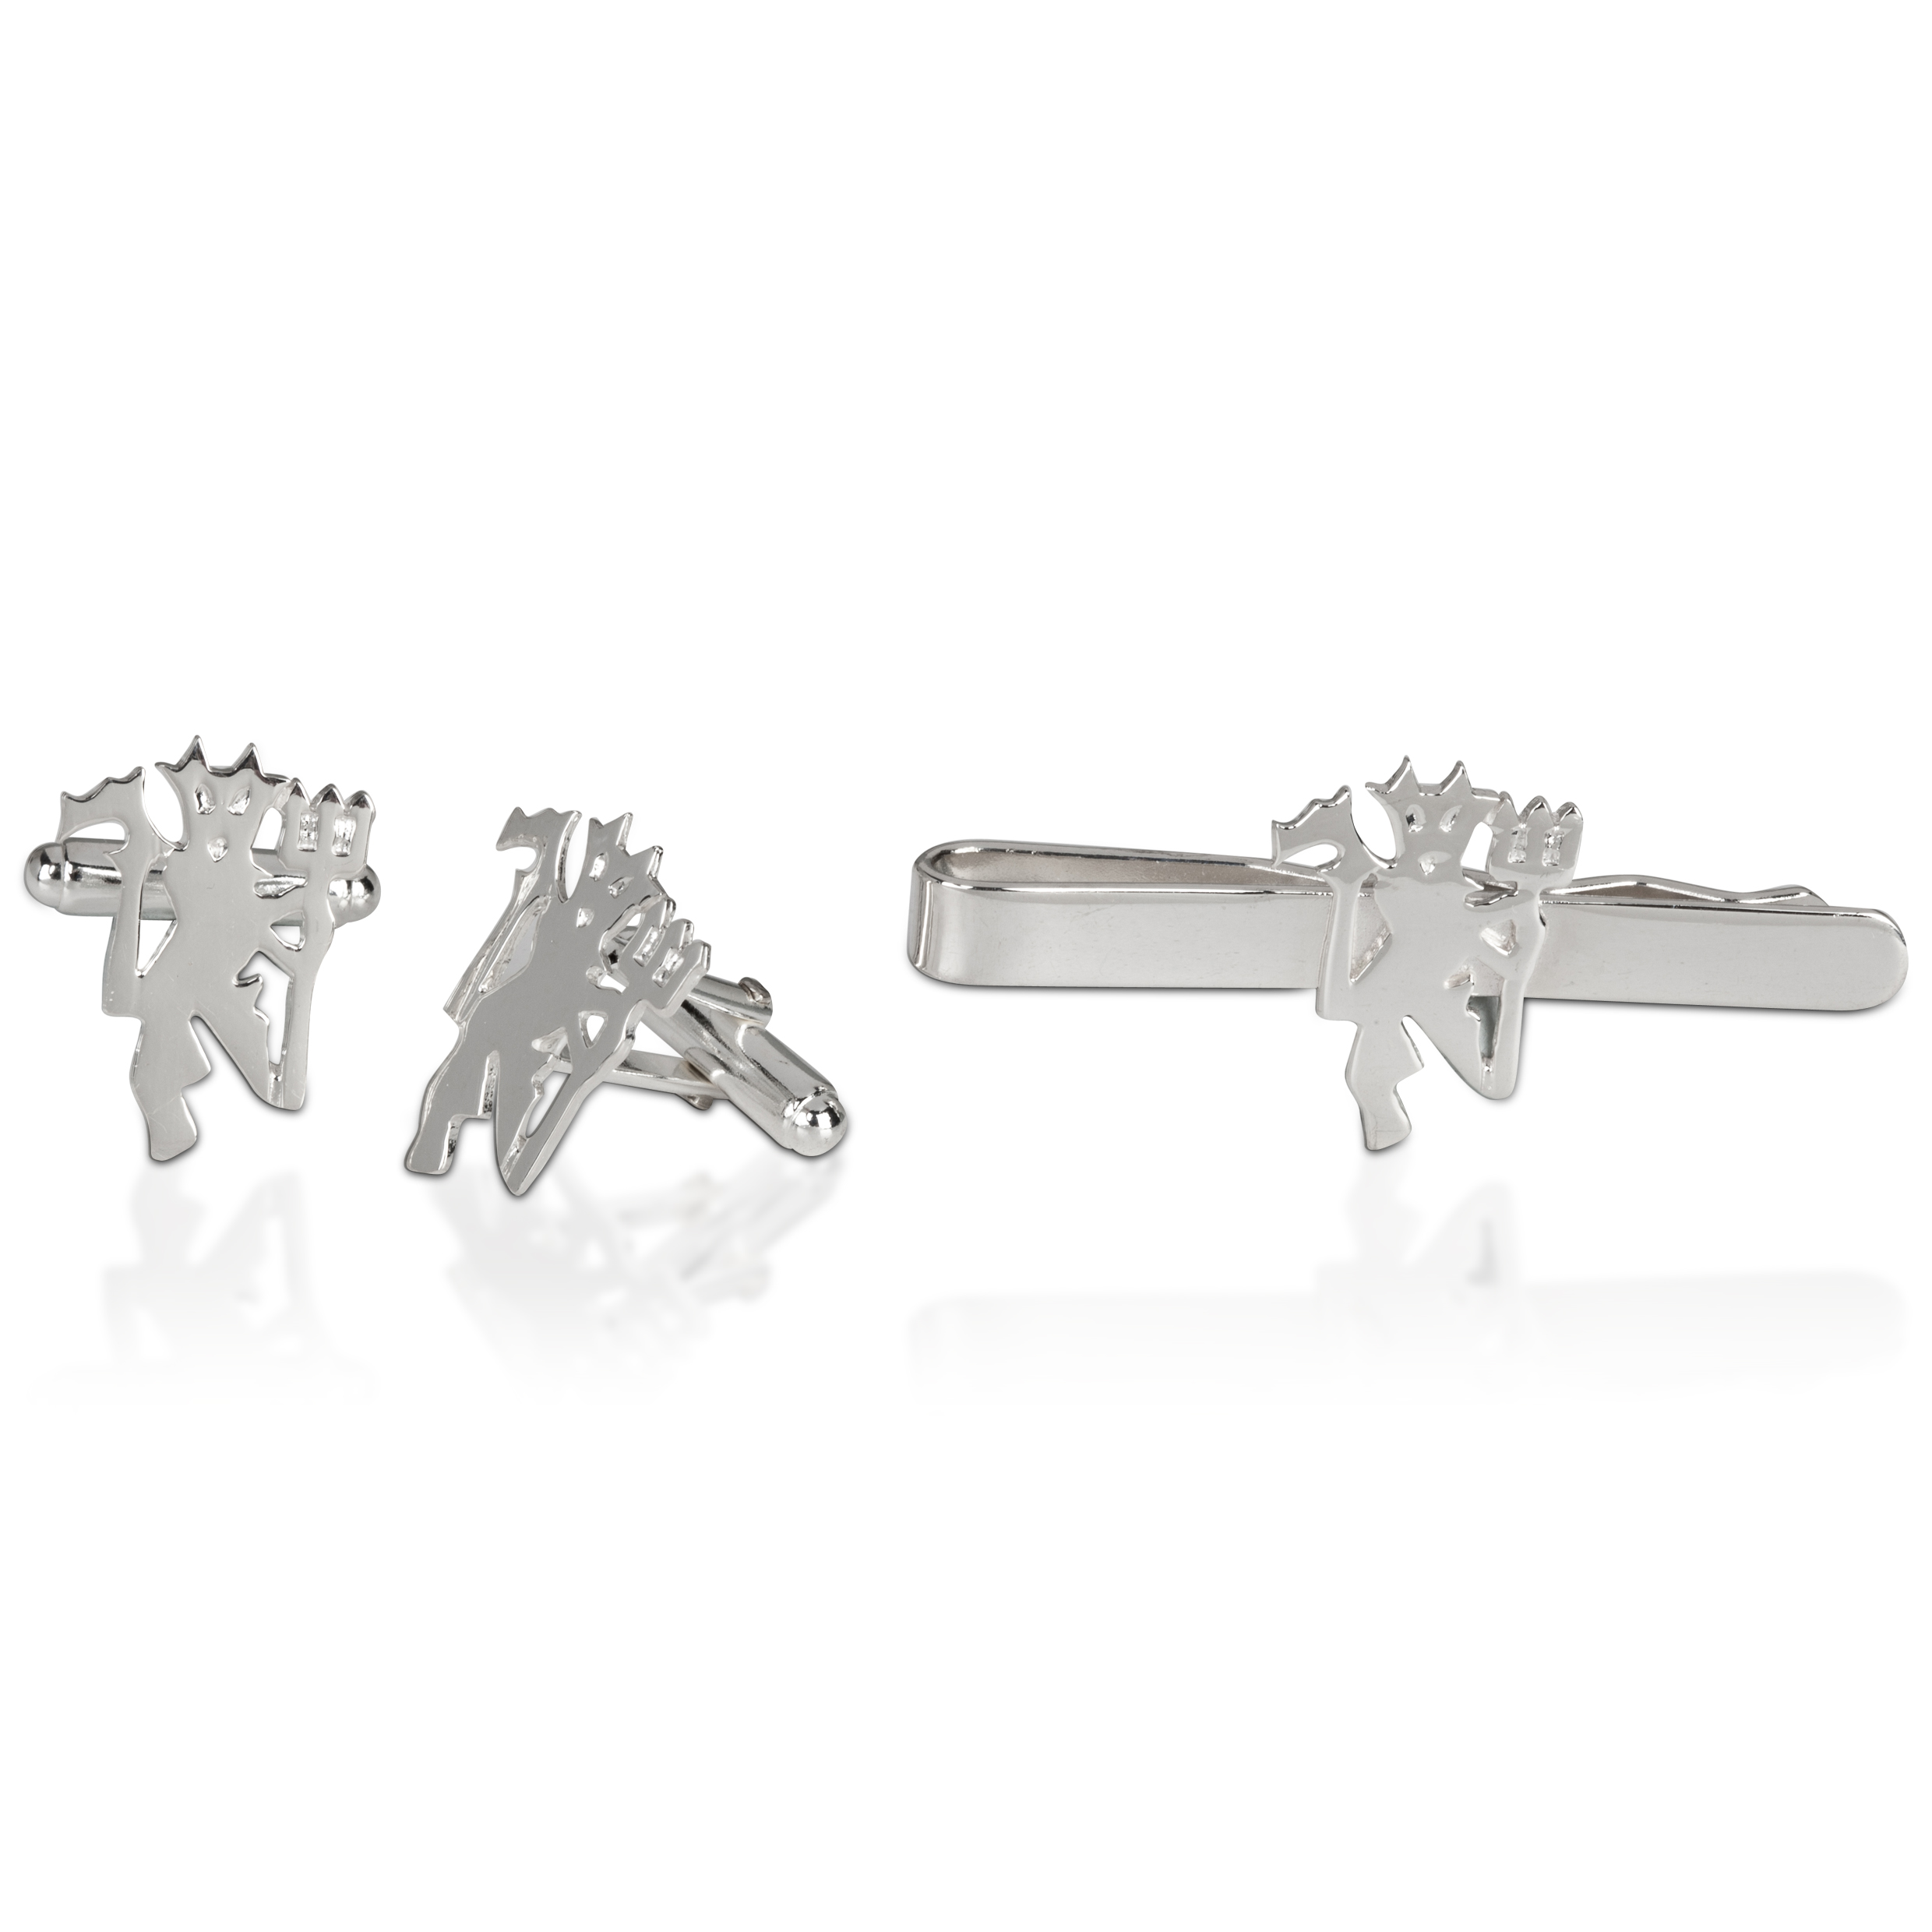 Manchester United Devil Cufflink &amp; Tie Slide Set - Sterling Silver